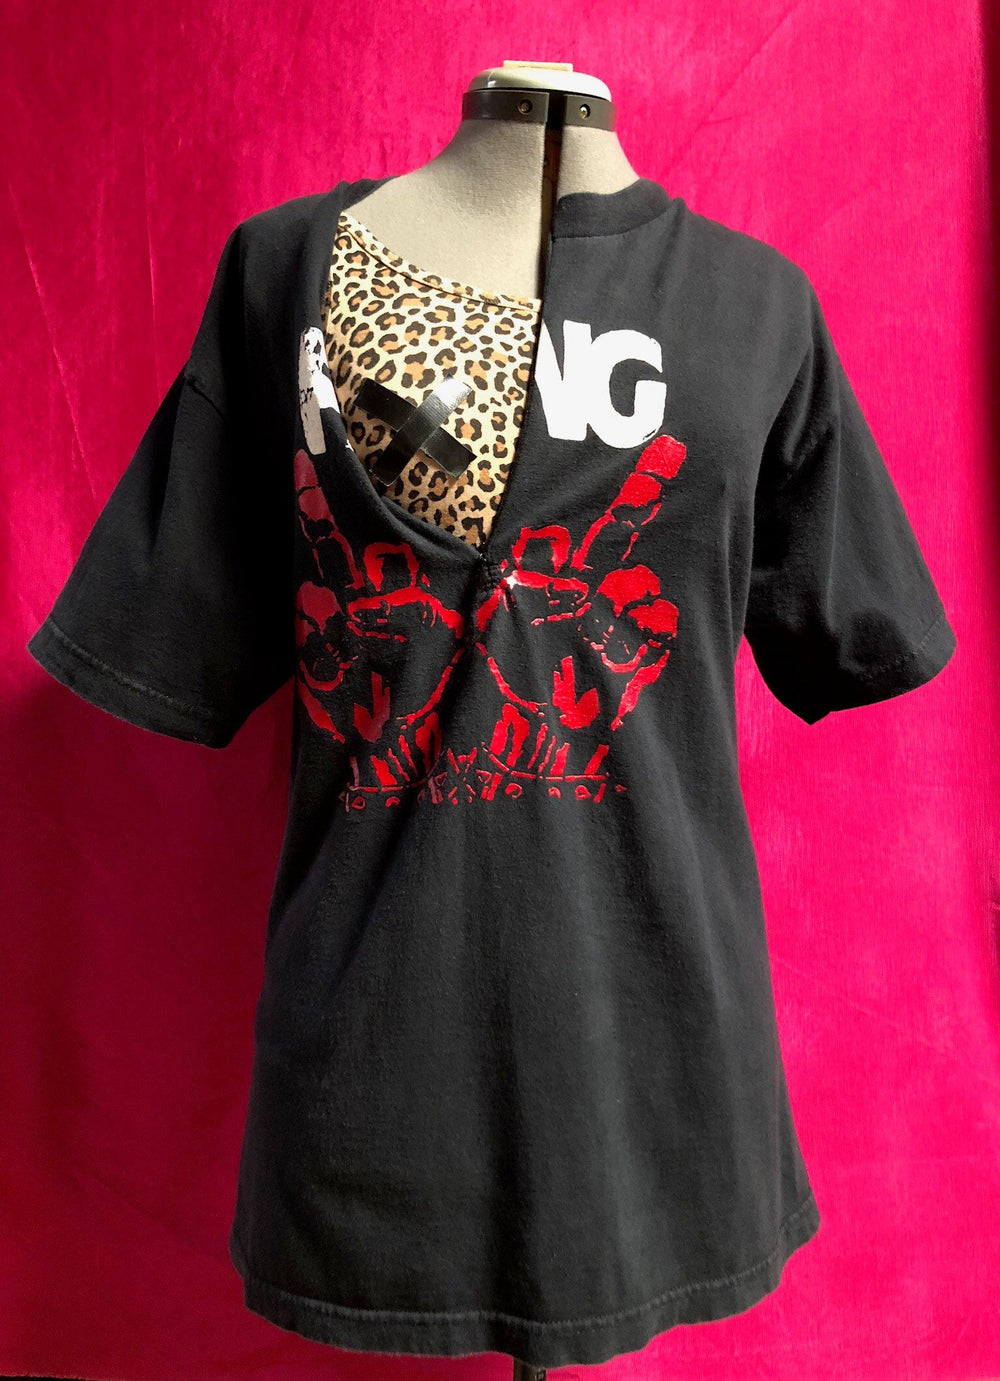 Black shirt with FANG design, customized for breastfeeding with zipper down front. In front of pink background.